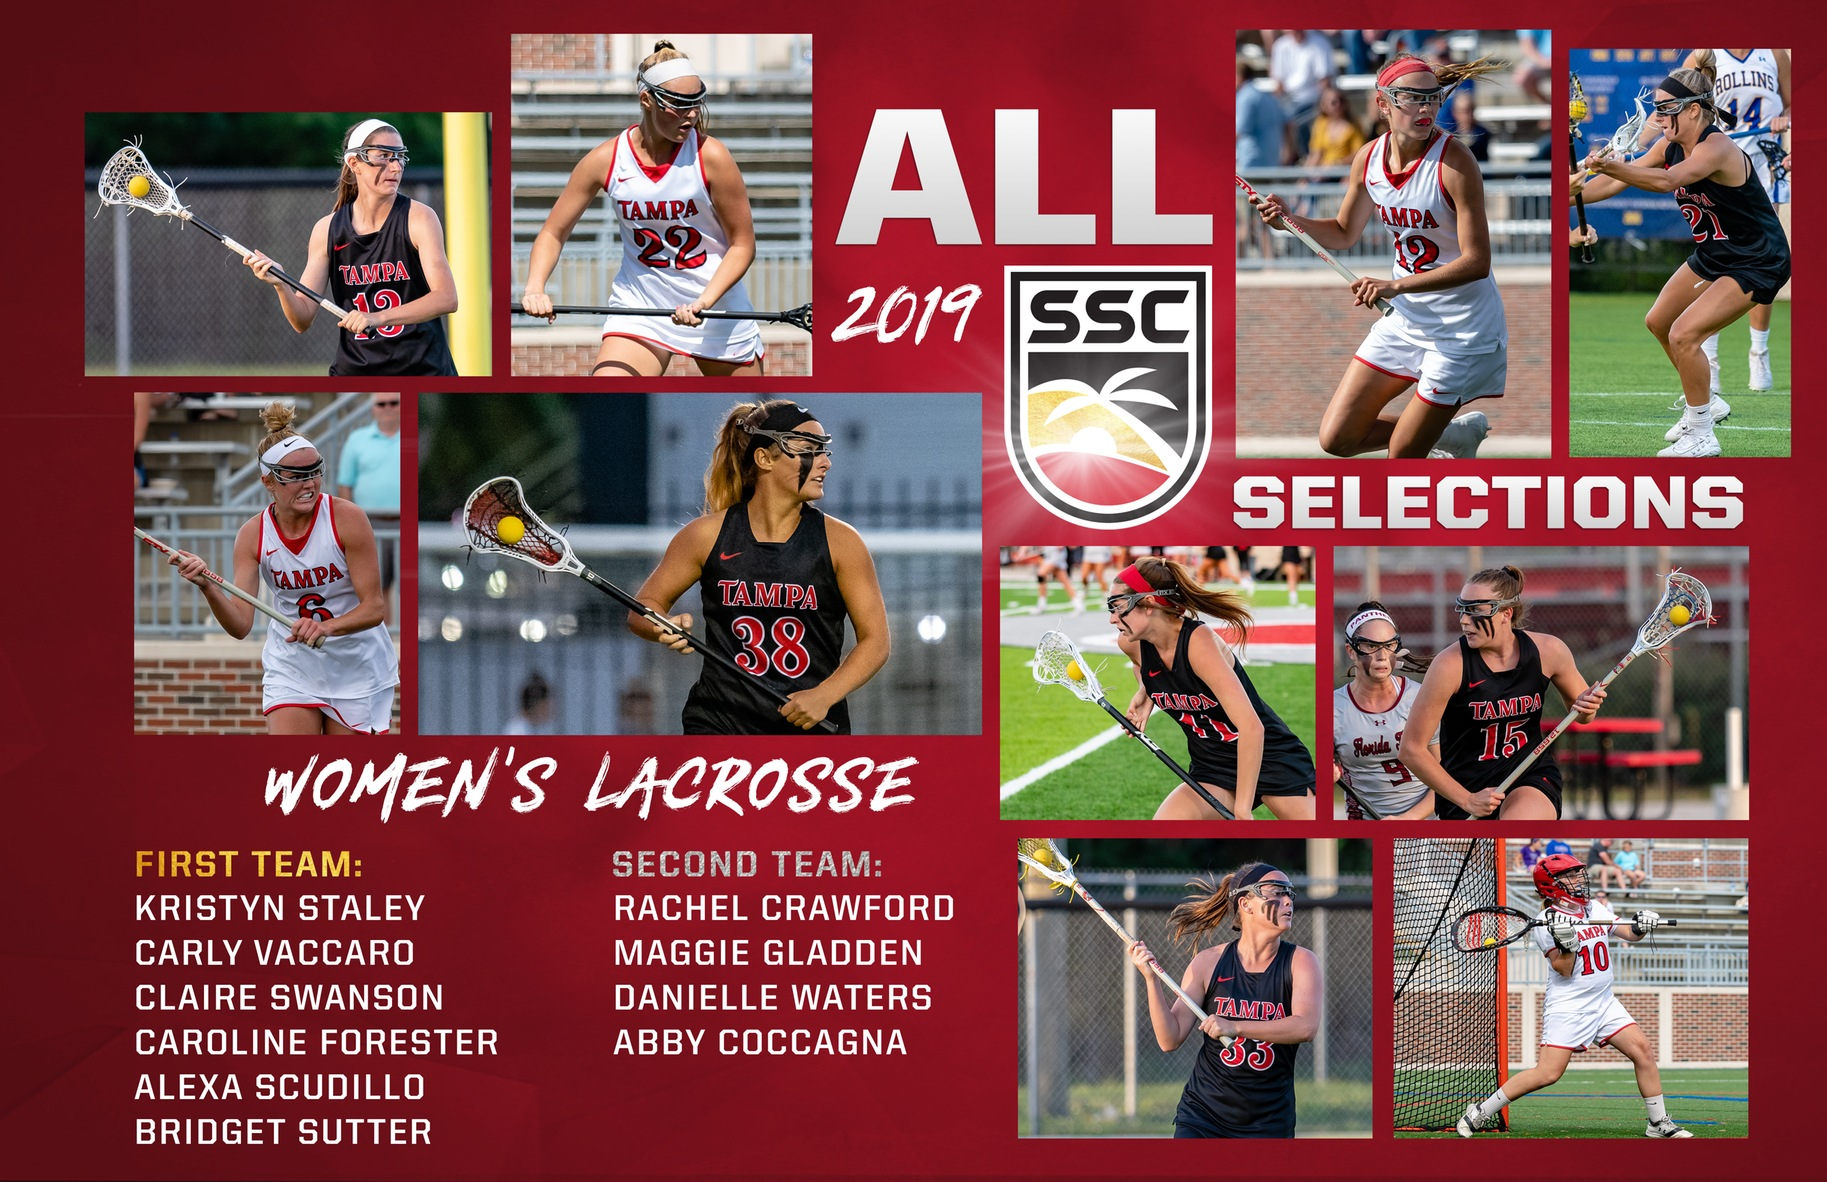 2019 ALL-SSC Selections, Swanson and Gallagher Earn Player and Coach of the Year